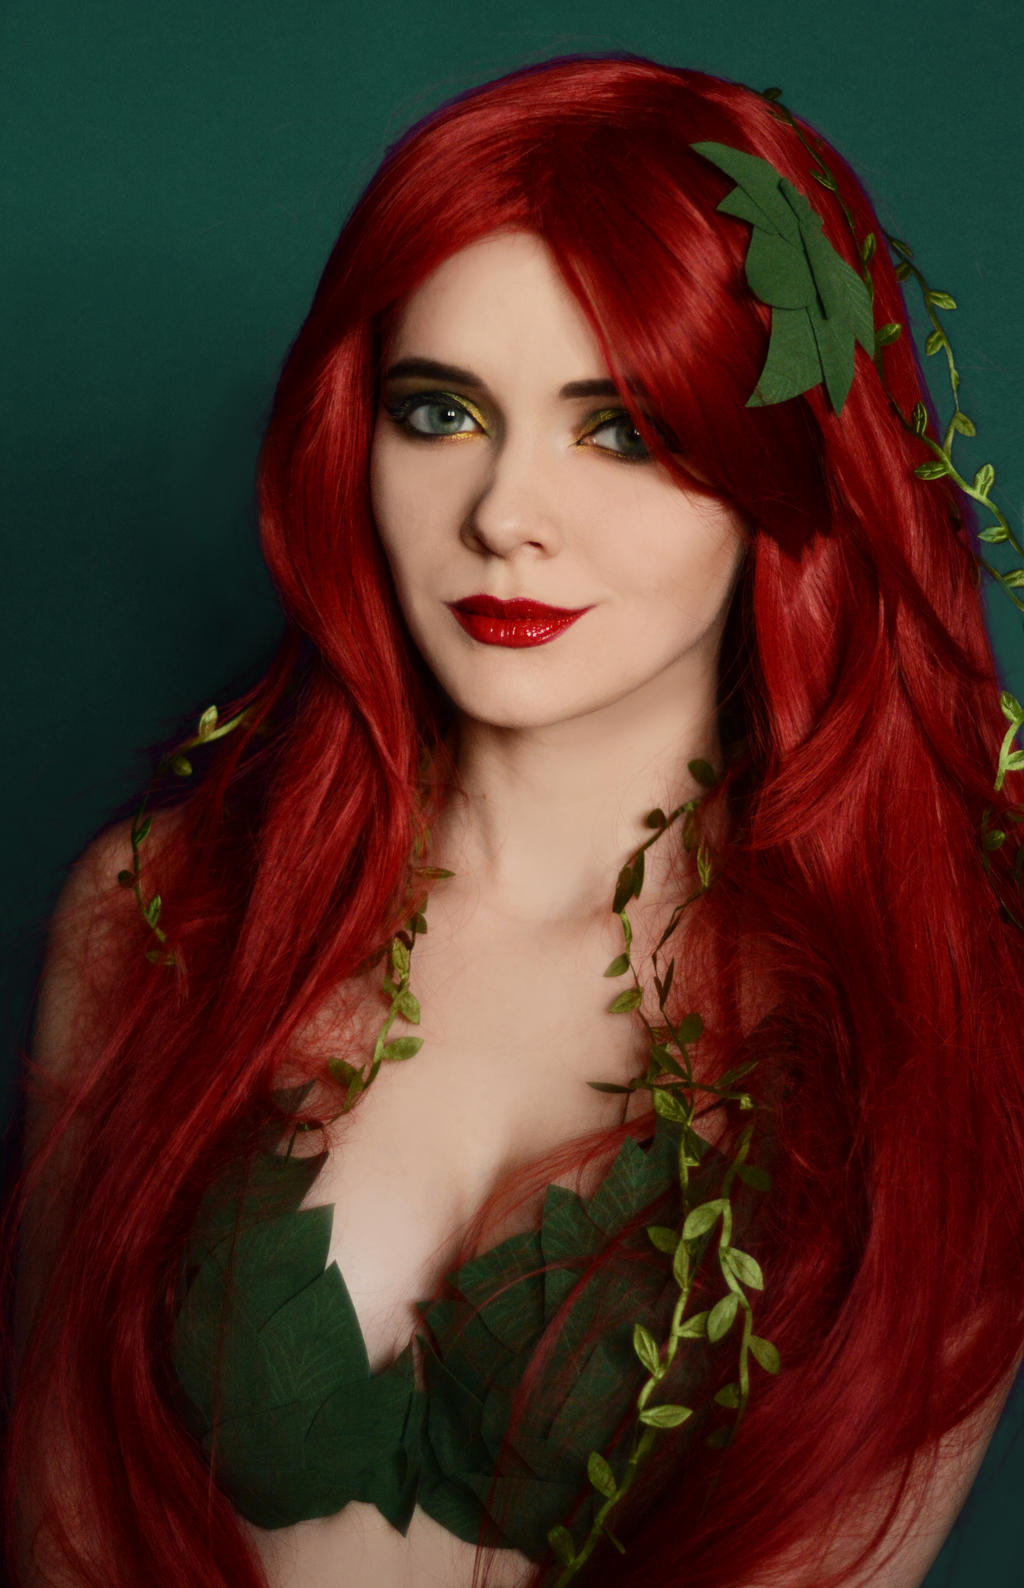 poison ivy hair style poison by iranyaaasha on deviantart 2354 | poison ivy by iranyaaasha dbeqkh2